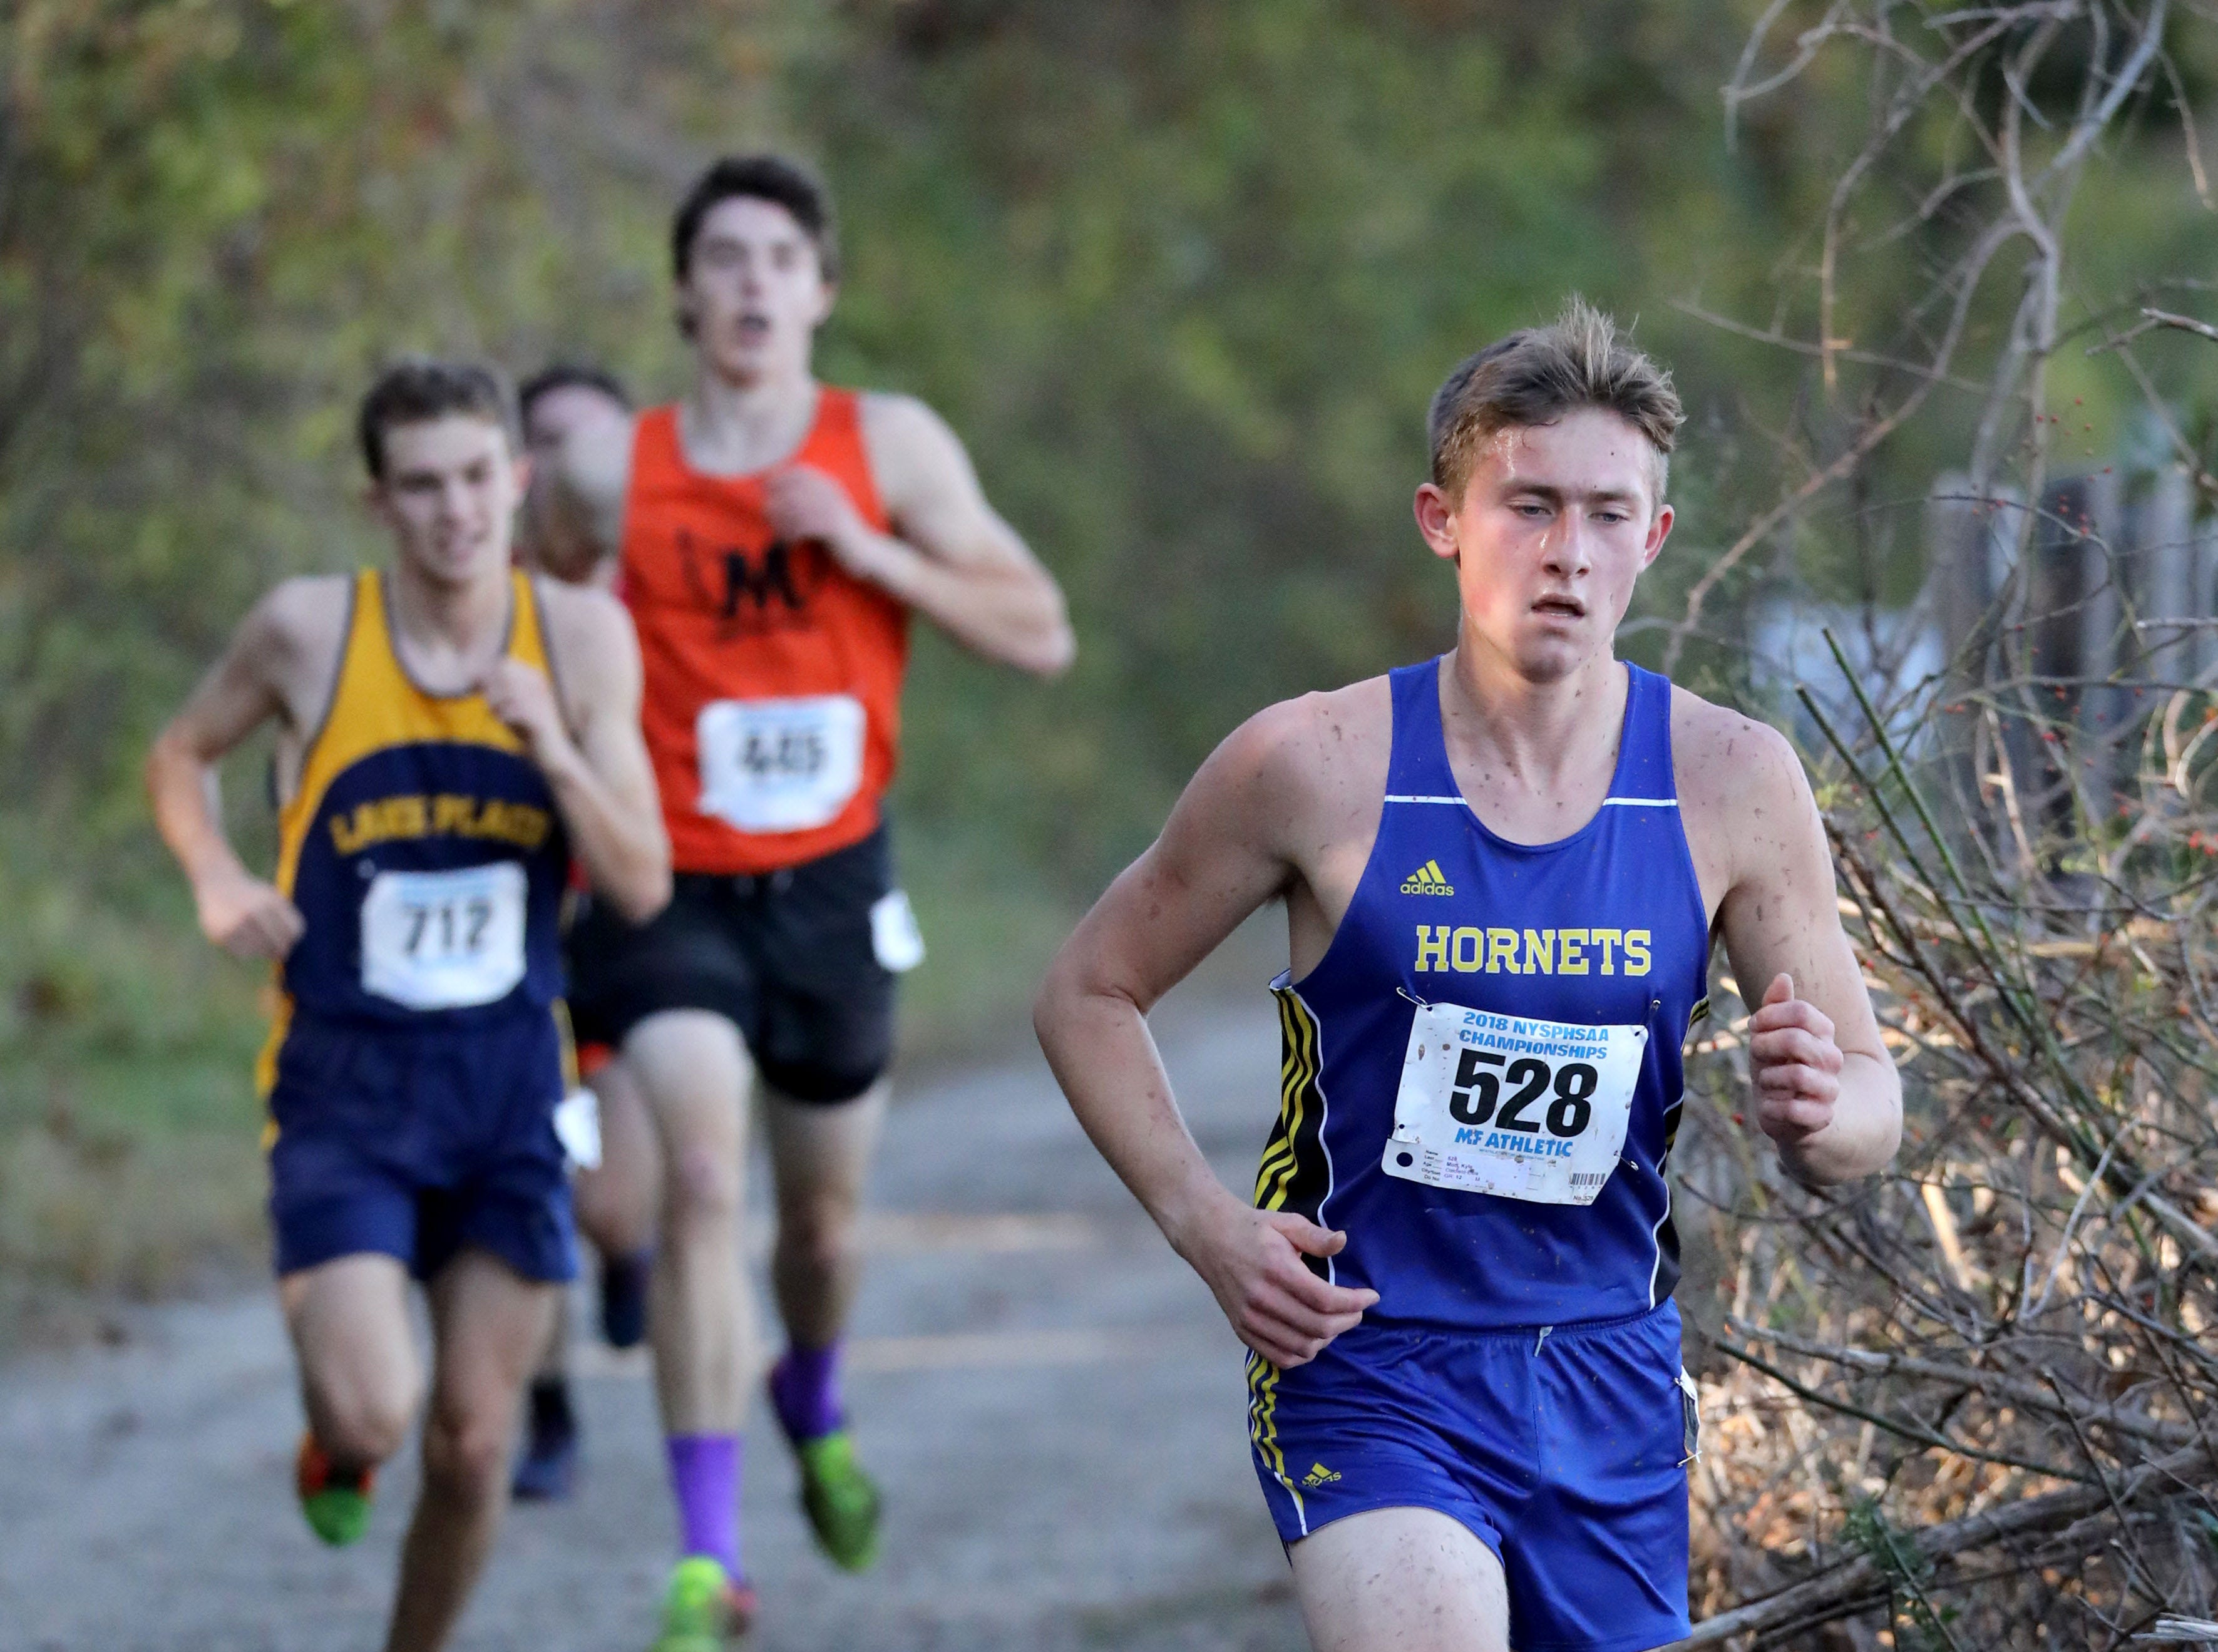 Kyle Mott from Oakfield-Elba, runs the boys Class D race during the 2018 NYSPHSAA Cross Country Championships at Sunken Meadow State Park in Kings Park on Nov. 10, 2018.